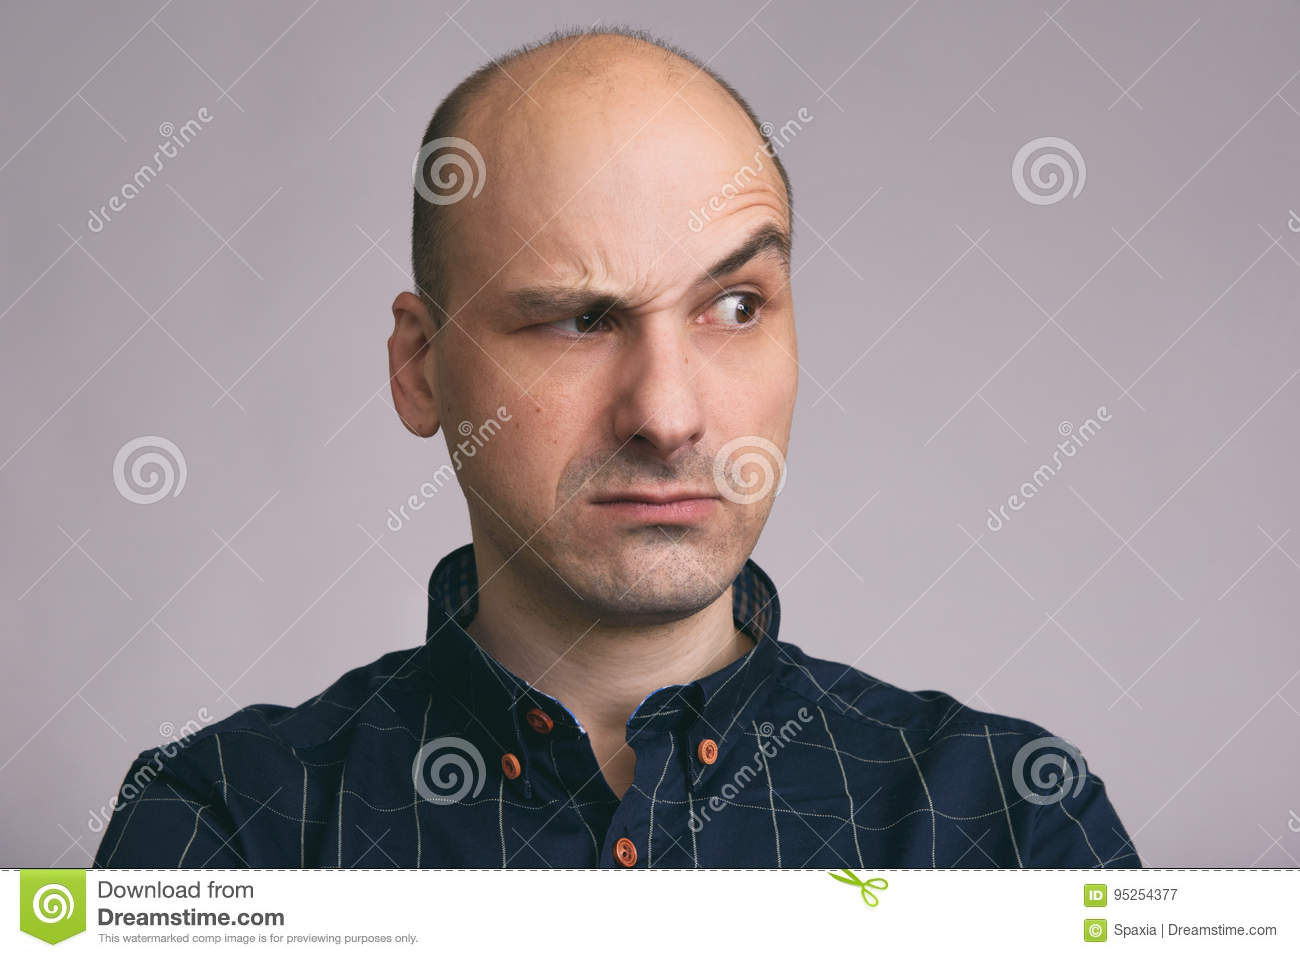 Serious Bald Man With Raised Eyebrow Stock Image Image Of Face